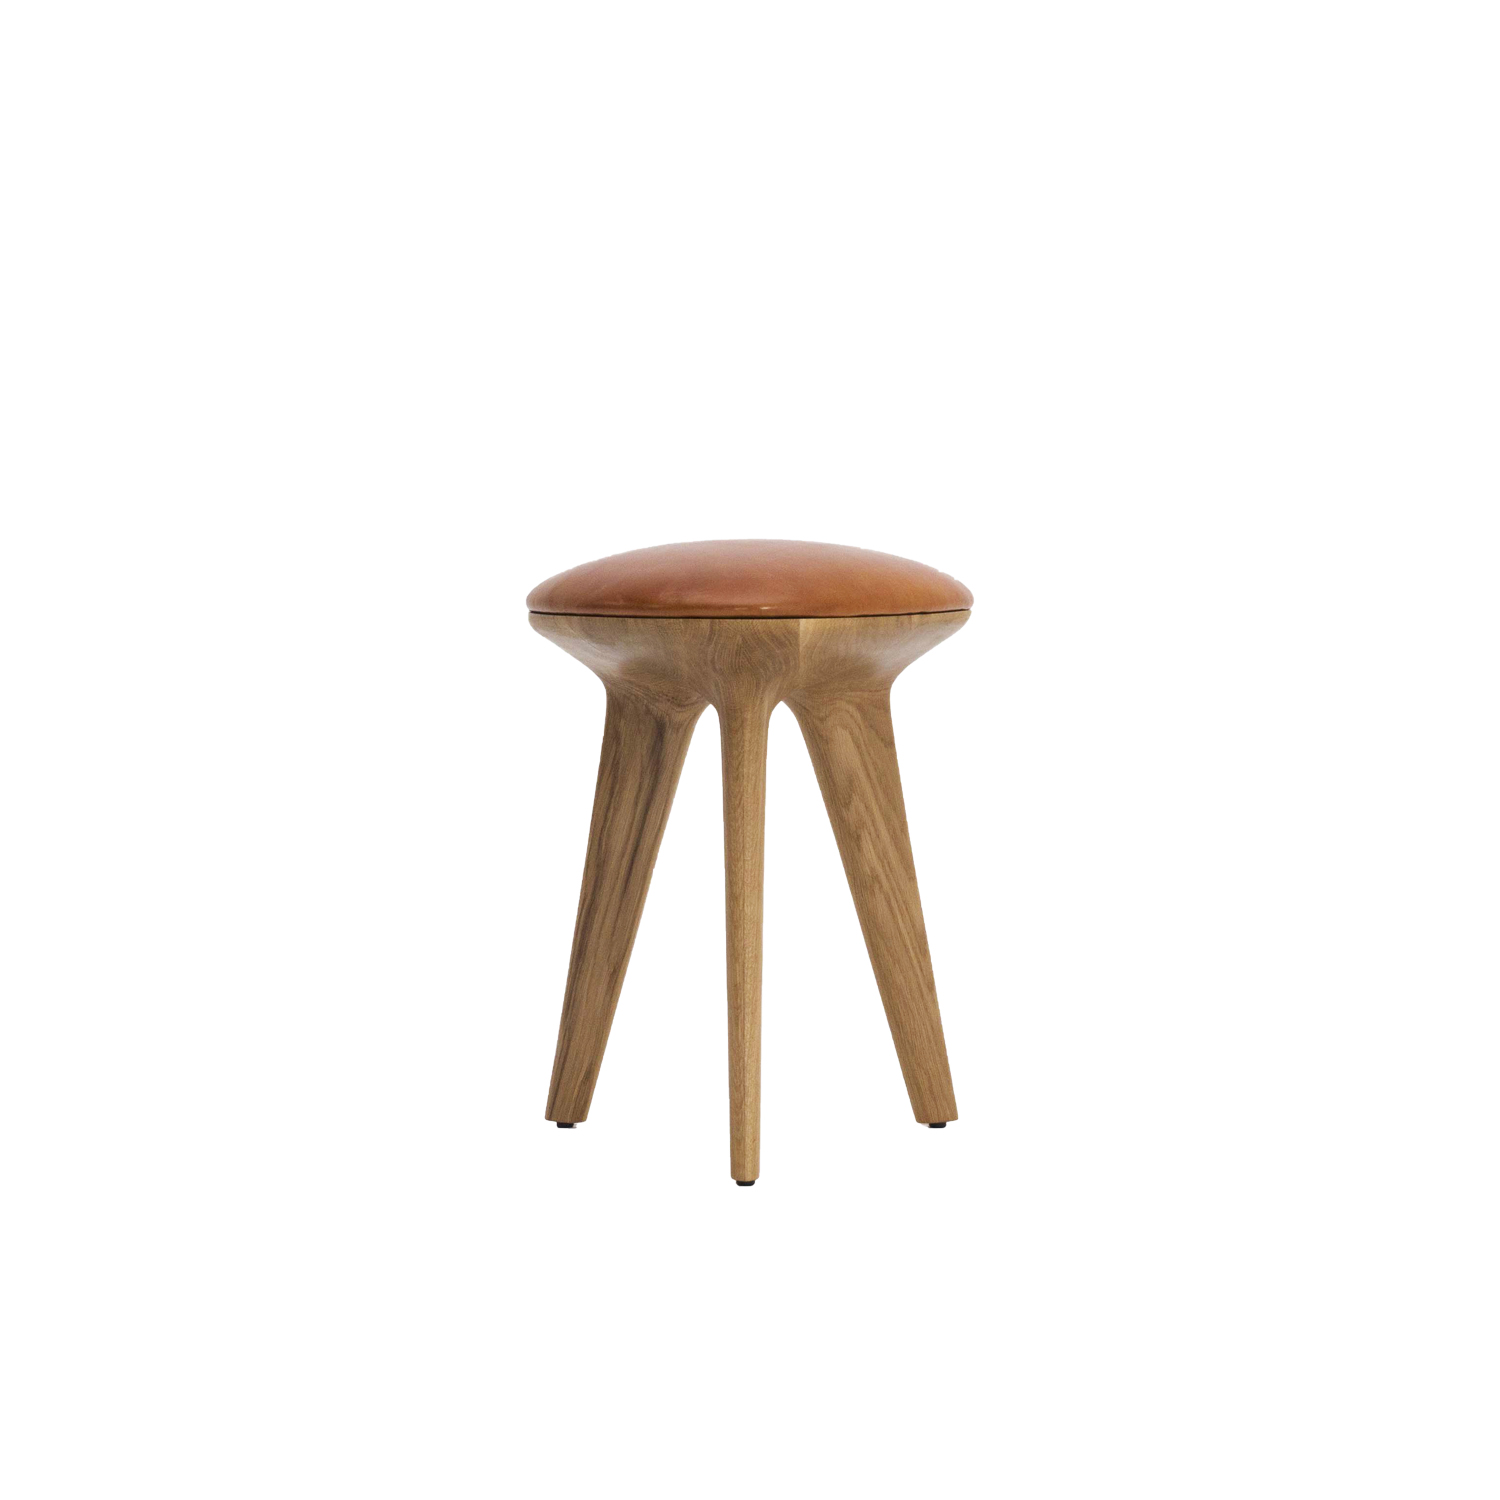 Rotor Stool - Inspired by the Reuleaux rotating triangle, the form of the Rotor stool is based on the intersection of three circles. The CNC-cut organic shape celebrates 'the curve of a constant width' with the wood grain radiating out in six directions from the centre to create a structural pattern. Available as a versatile sidetable or comfortable stool with the addition of a padded vegetable-tanned leather seat.  | Matter of Stuff